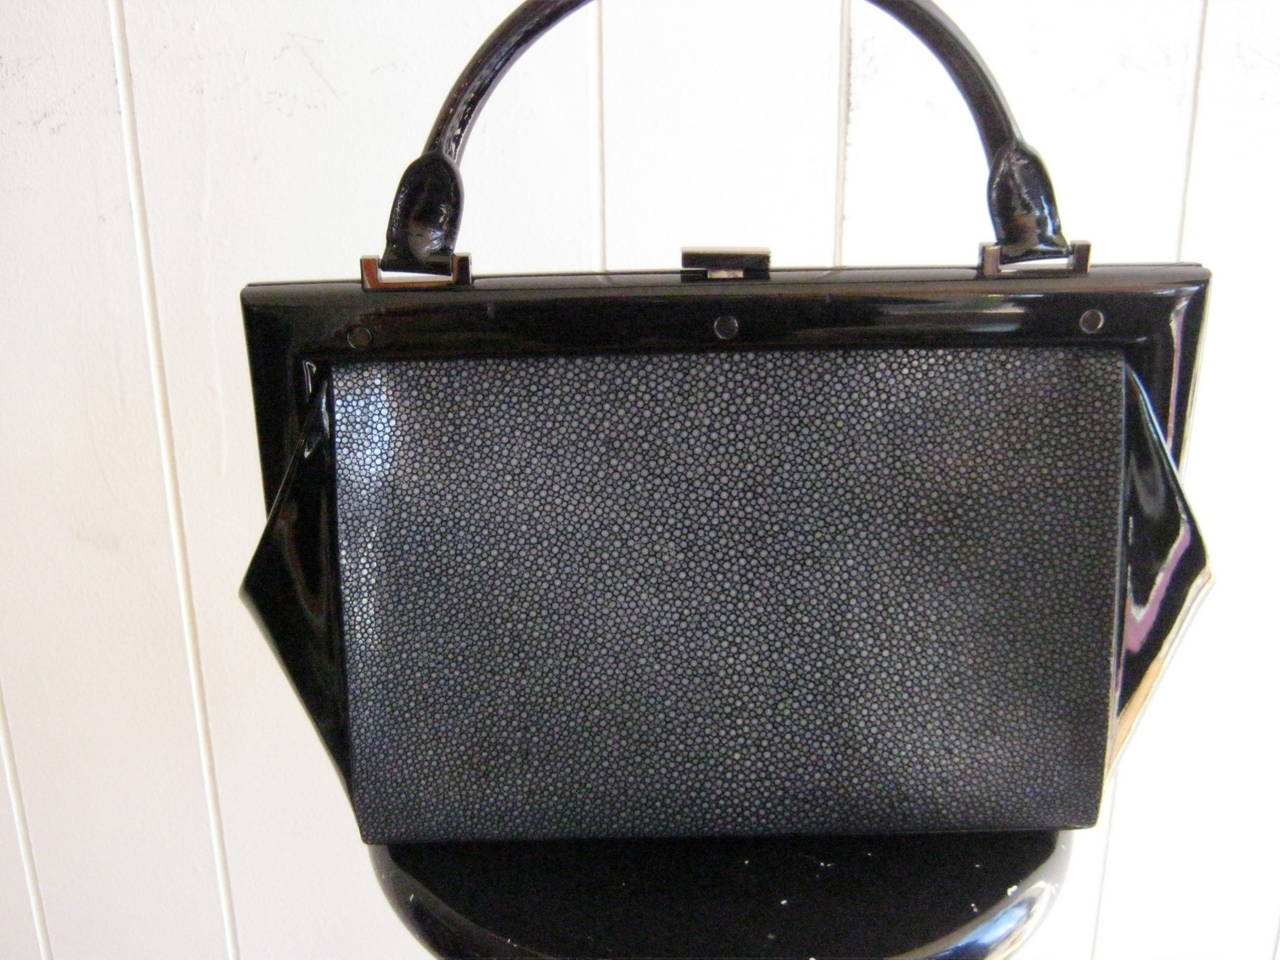 This Structured Stingray Handbag Has A Wood Frame Patent Leather Sides And Handle Very